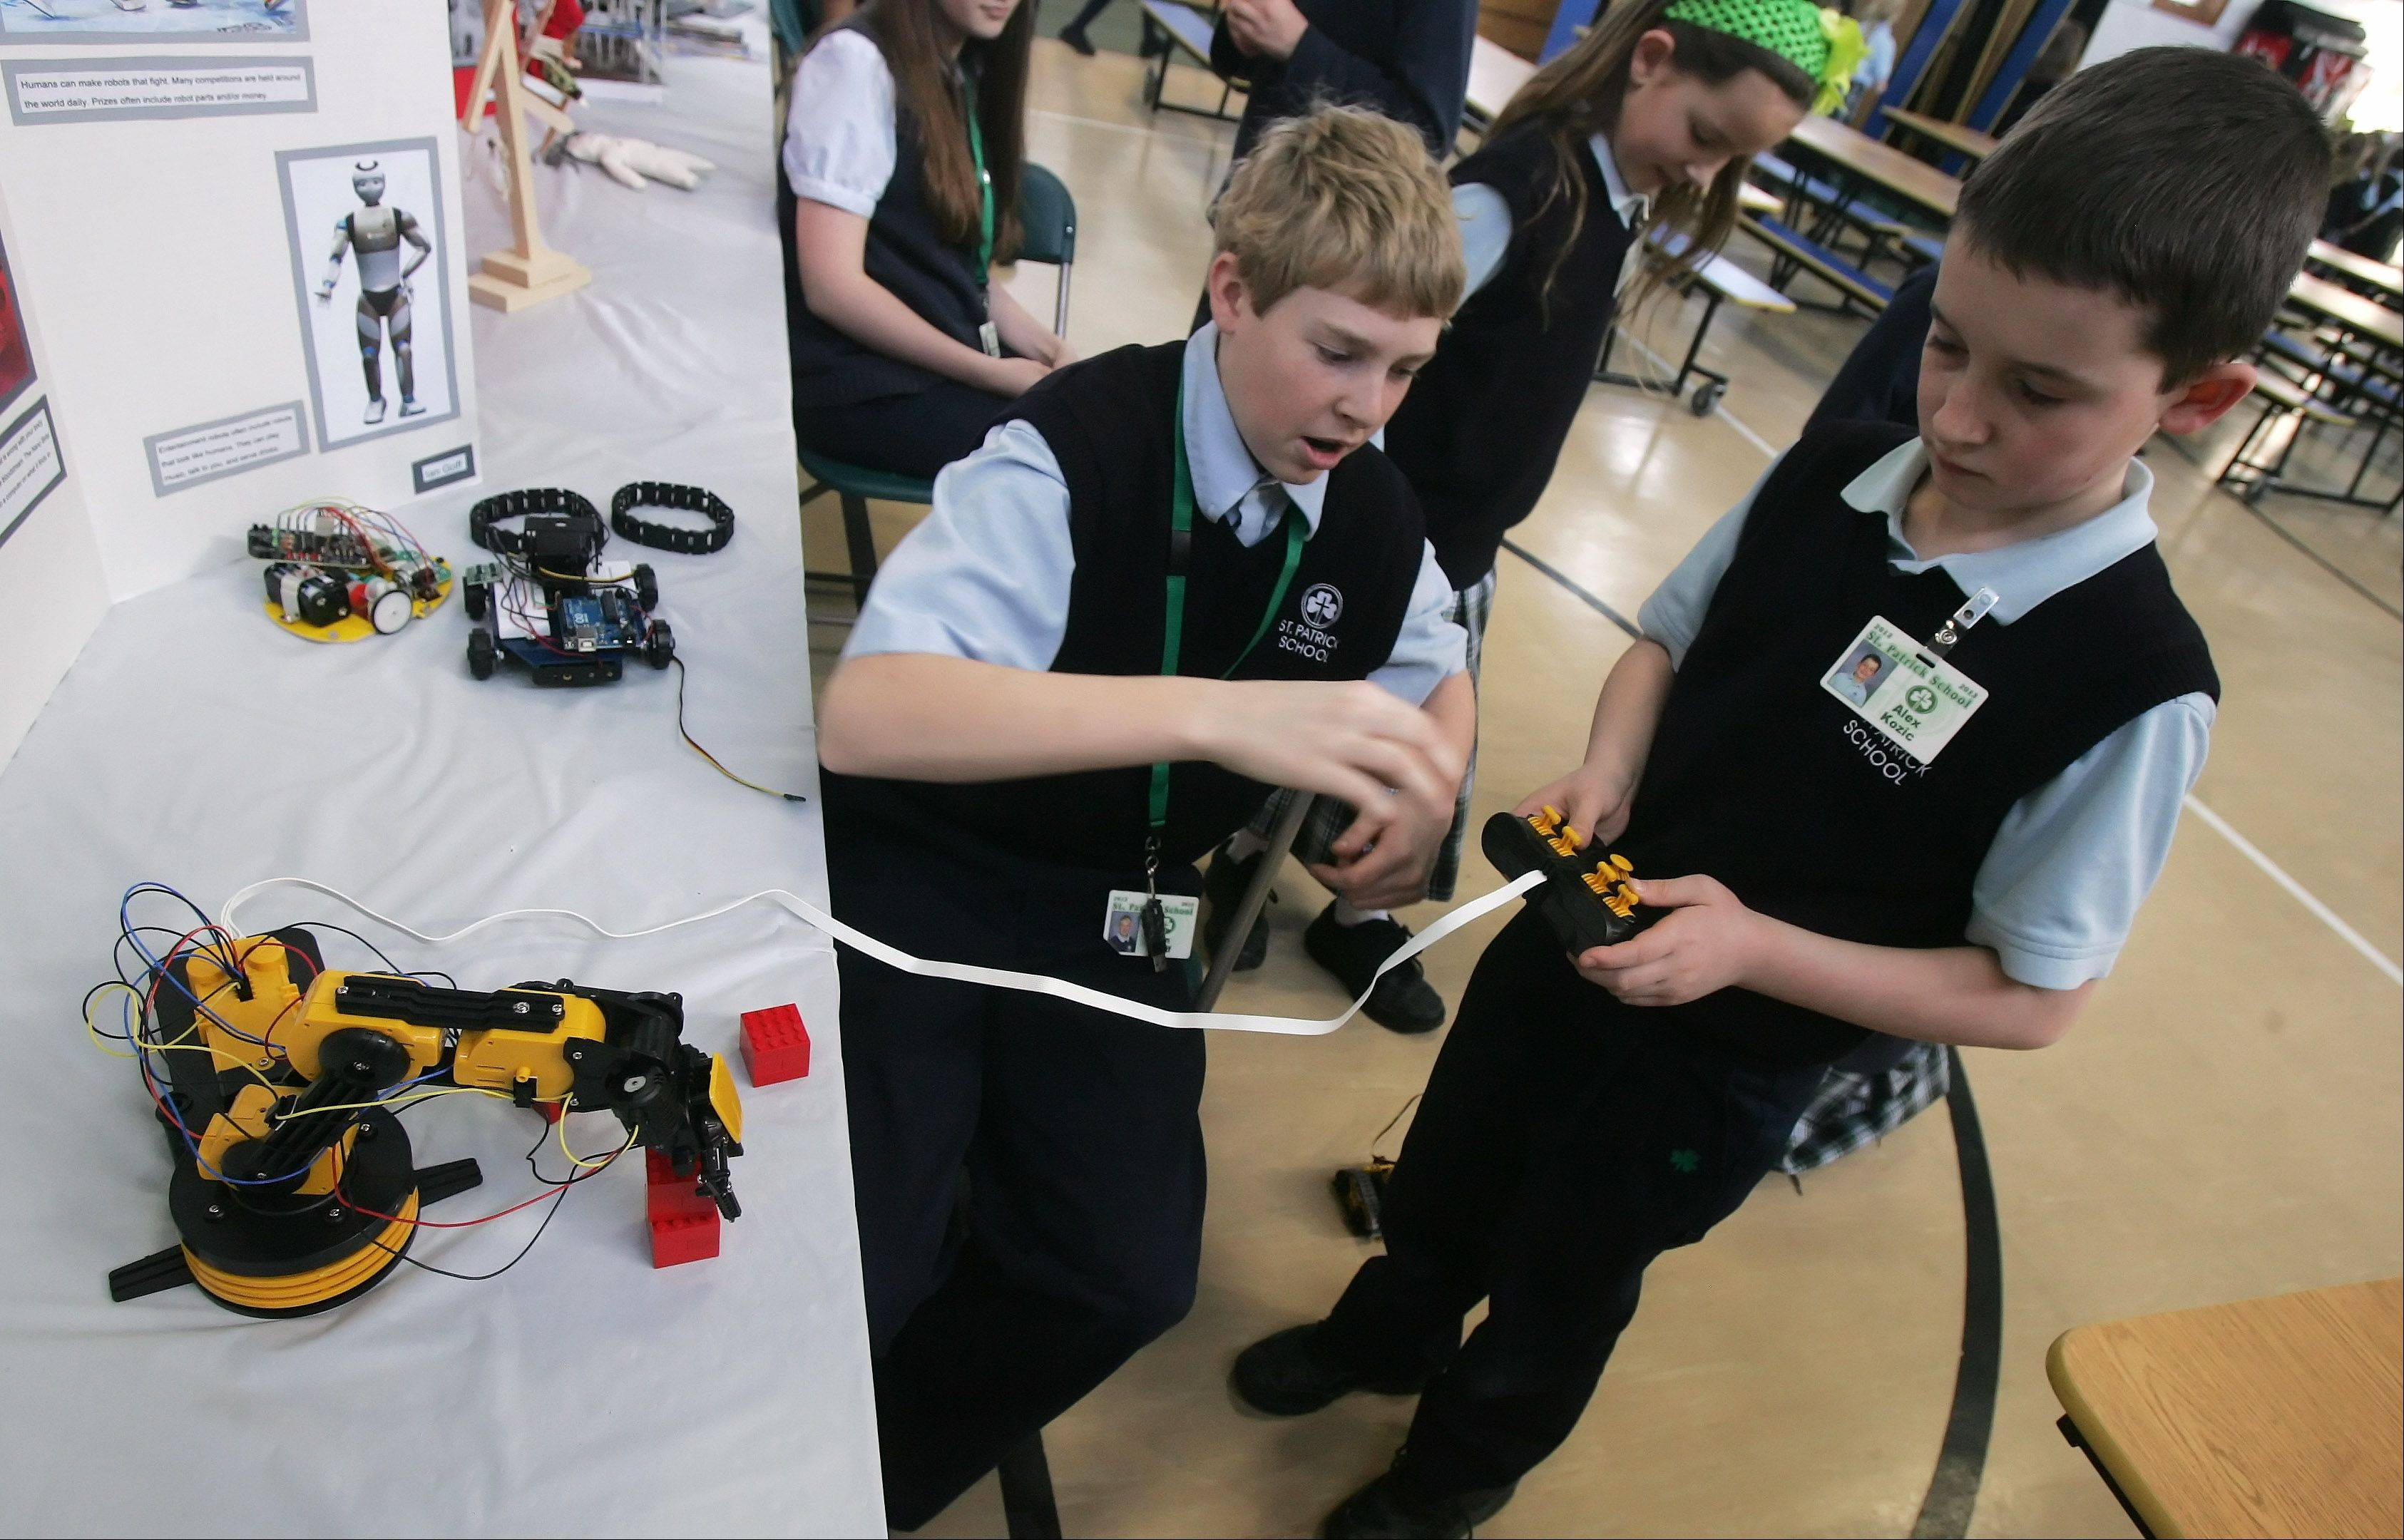 Eighth grader Ian Goff, left, helps fourth grader Alex Kozic operate a robot during the Academic Fair Wednesday at St. Patrick Catholic School in Wadsworth. Eighth grade students presented their projects on topics ranging from robotics, to Walt Disney World, to the Salem witch hunts.